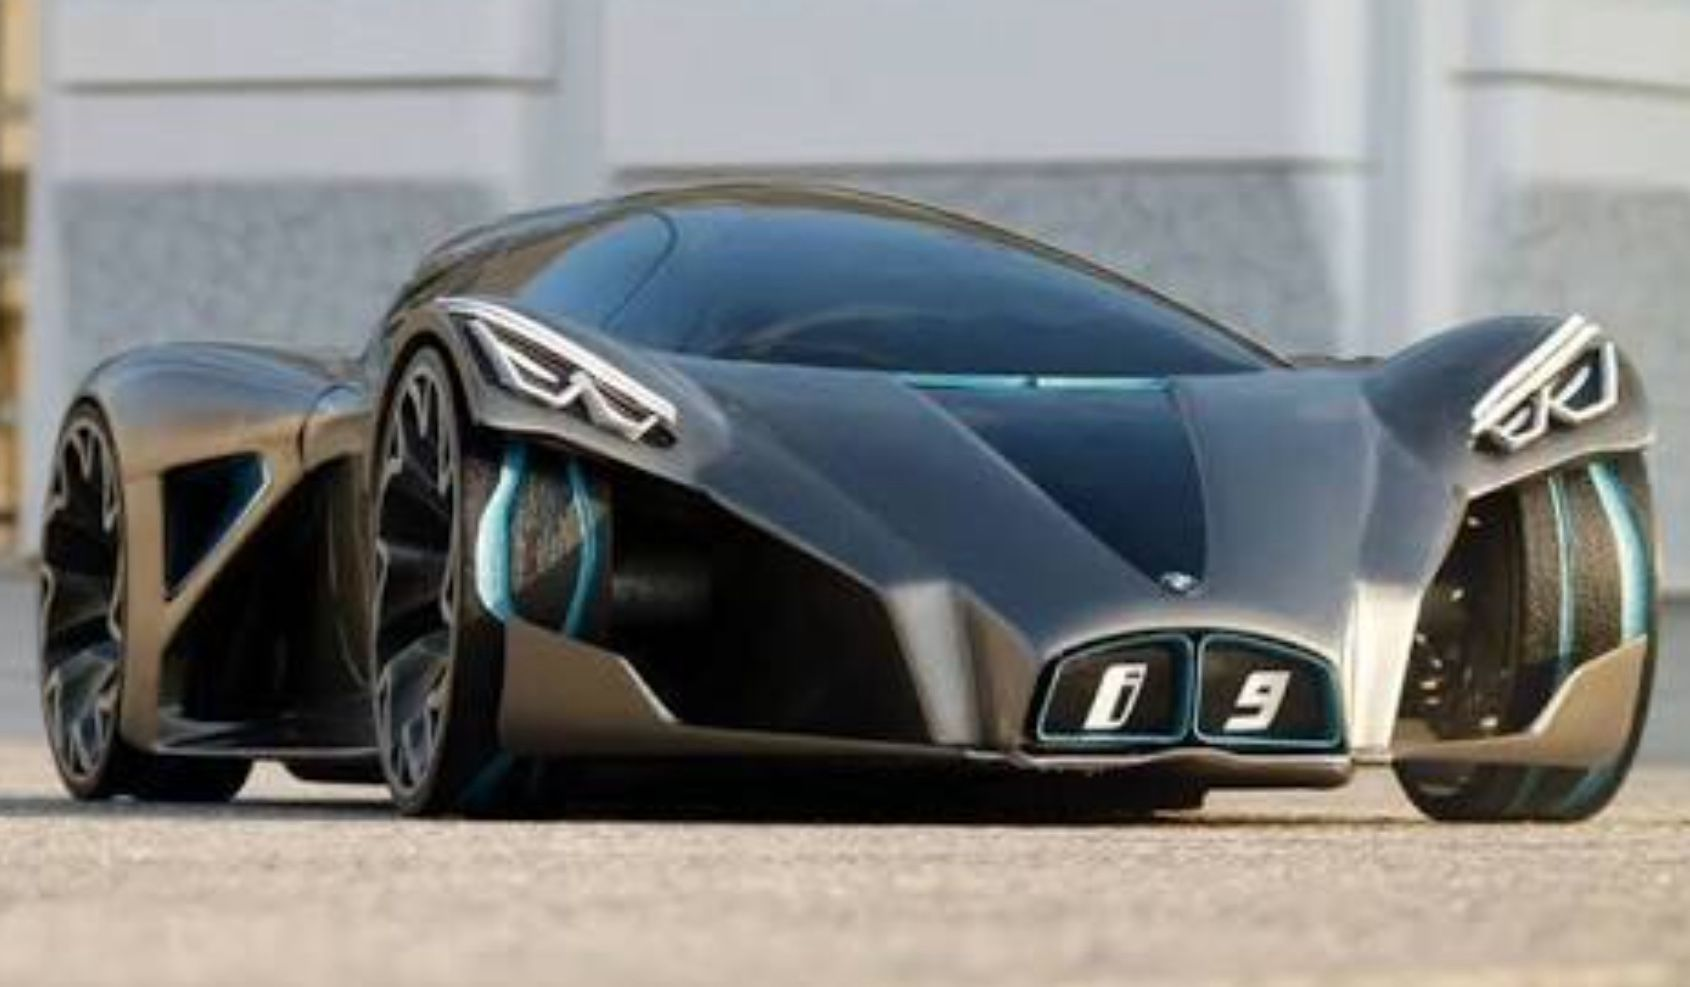 Pin By Kenttruong On Bmw Bmw Cars Bmw Supercar